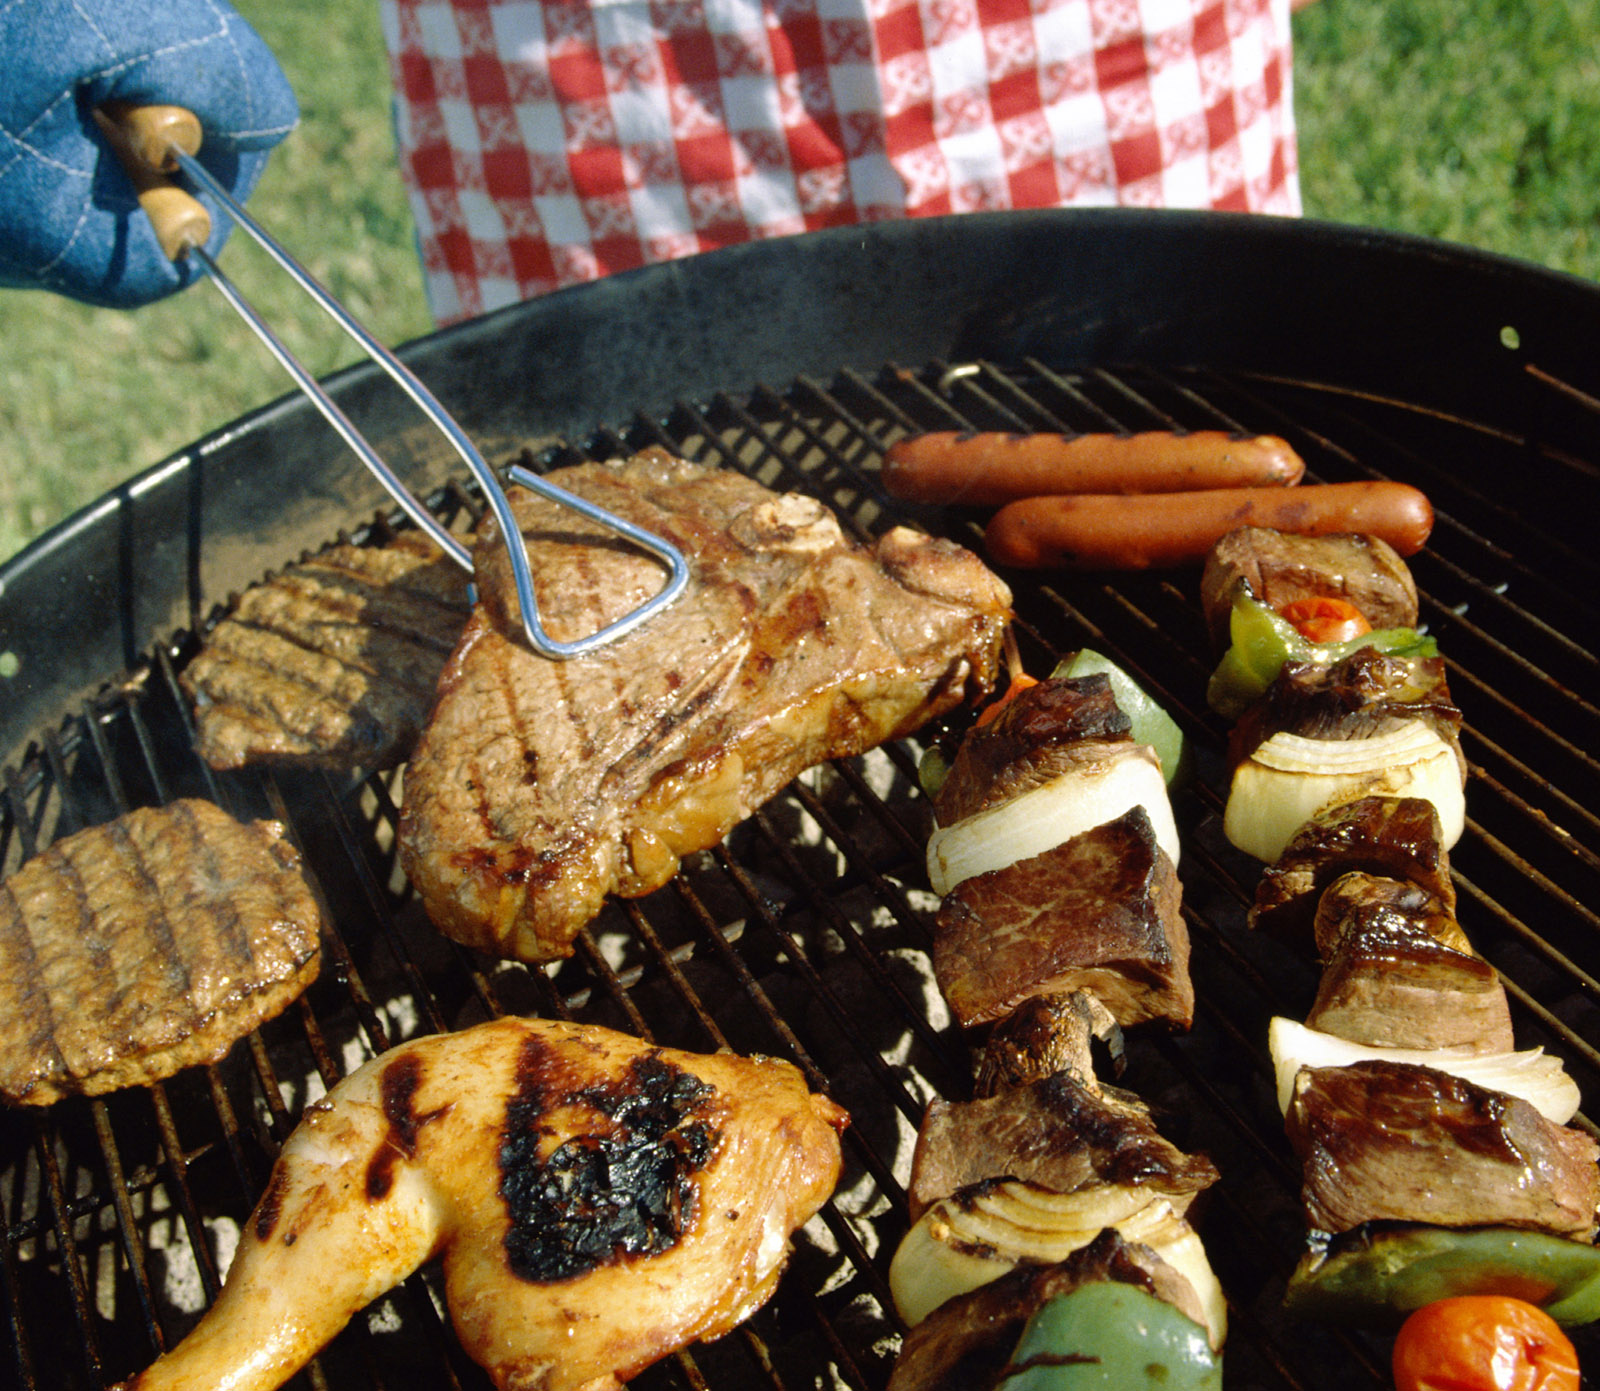 Tips for a season of safe grilling